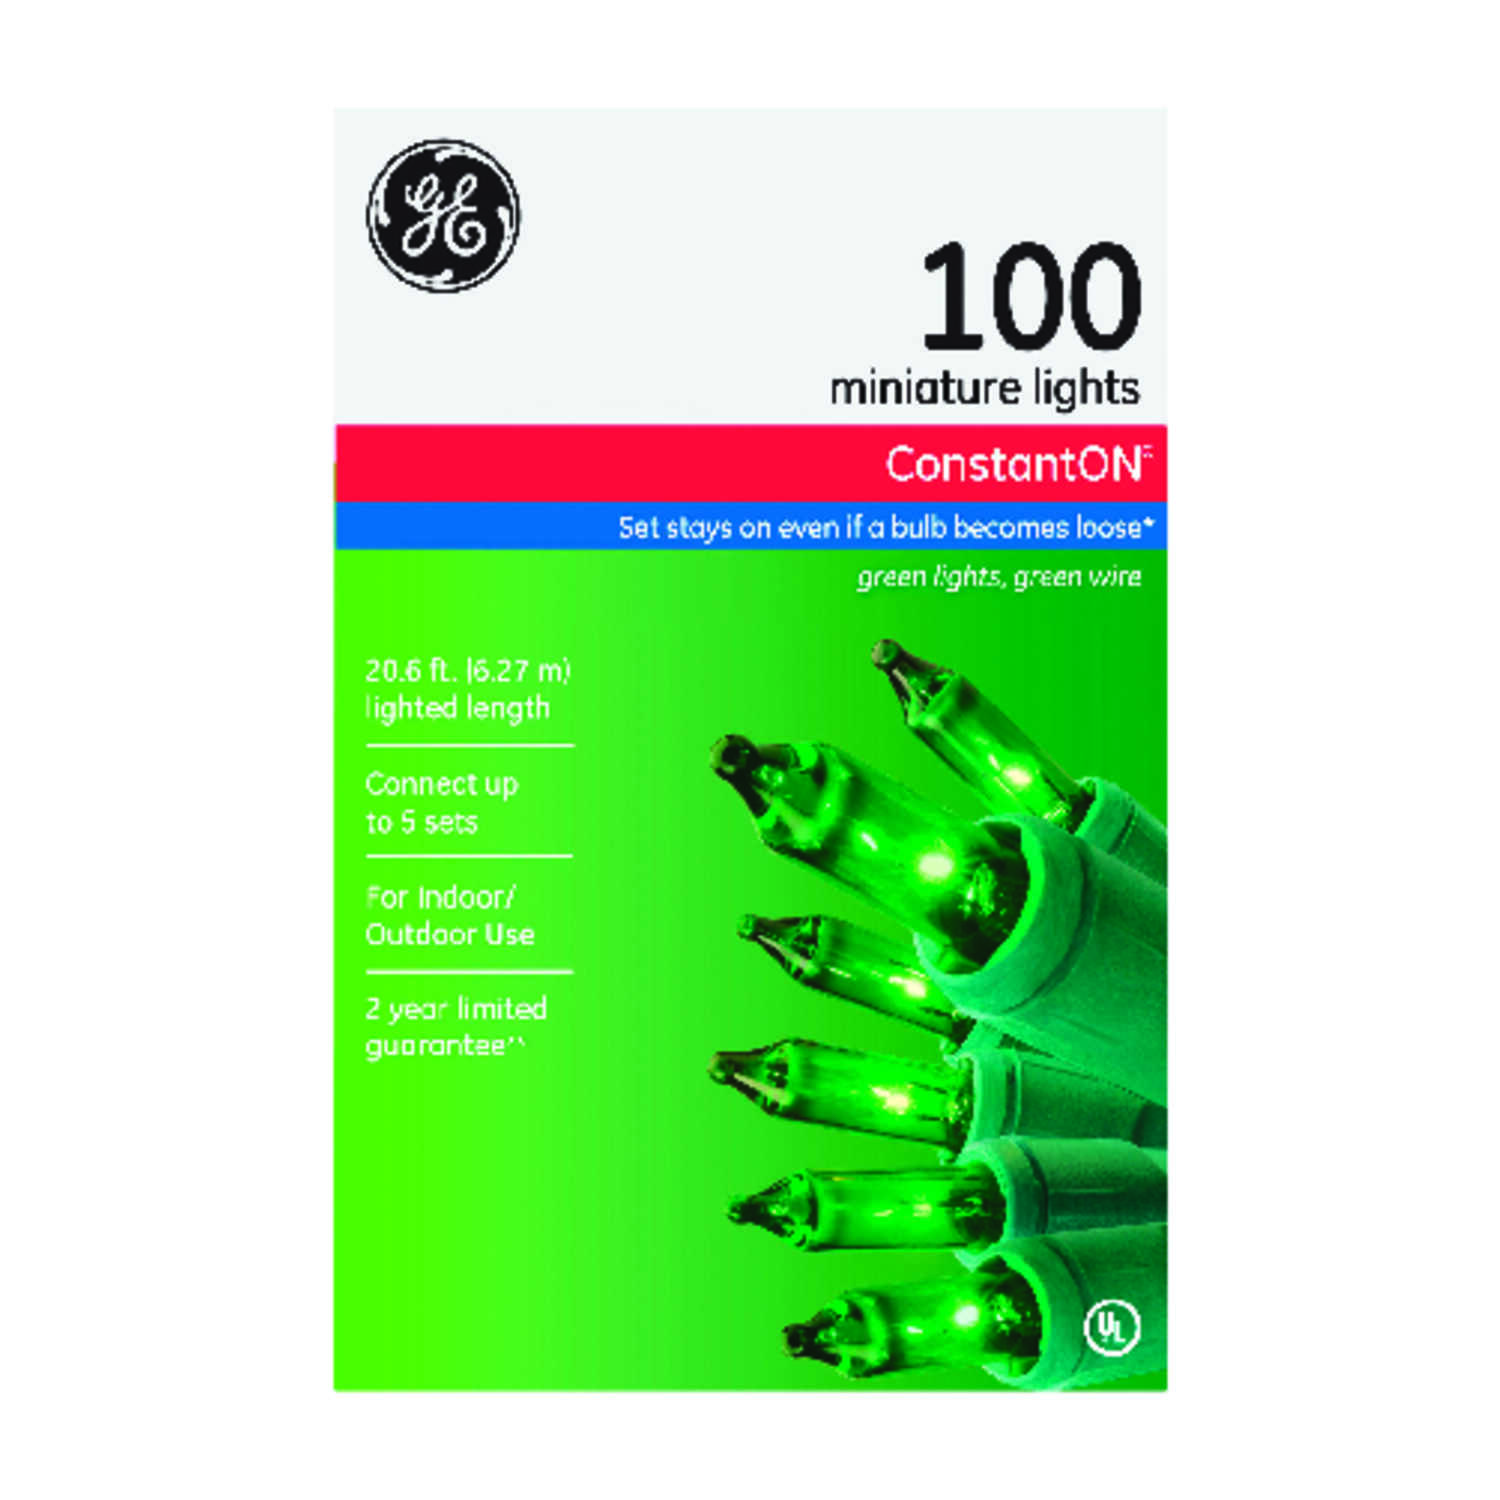 GE  Constant On  Incandescent  Mini  Light Set  Green  20.6 ft. 100 lights